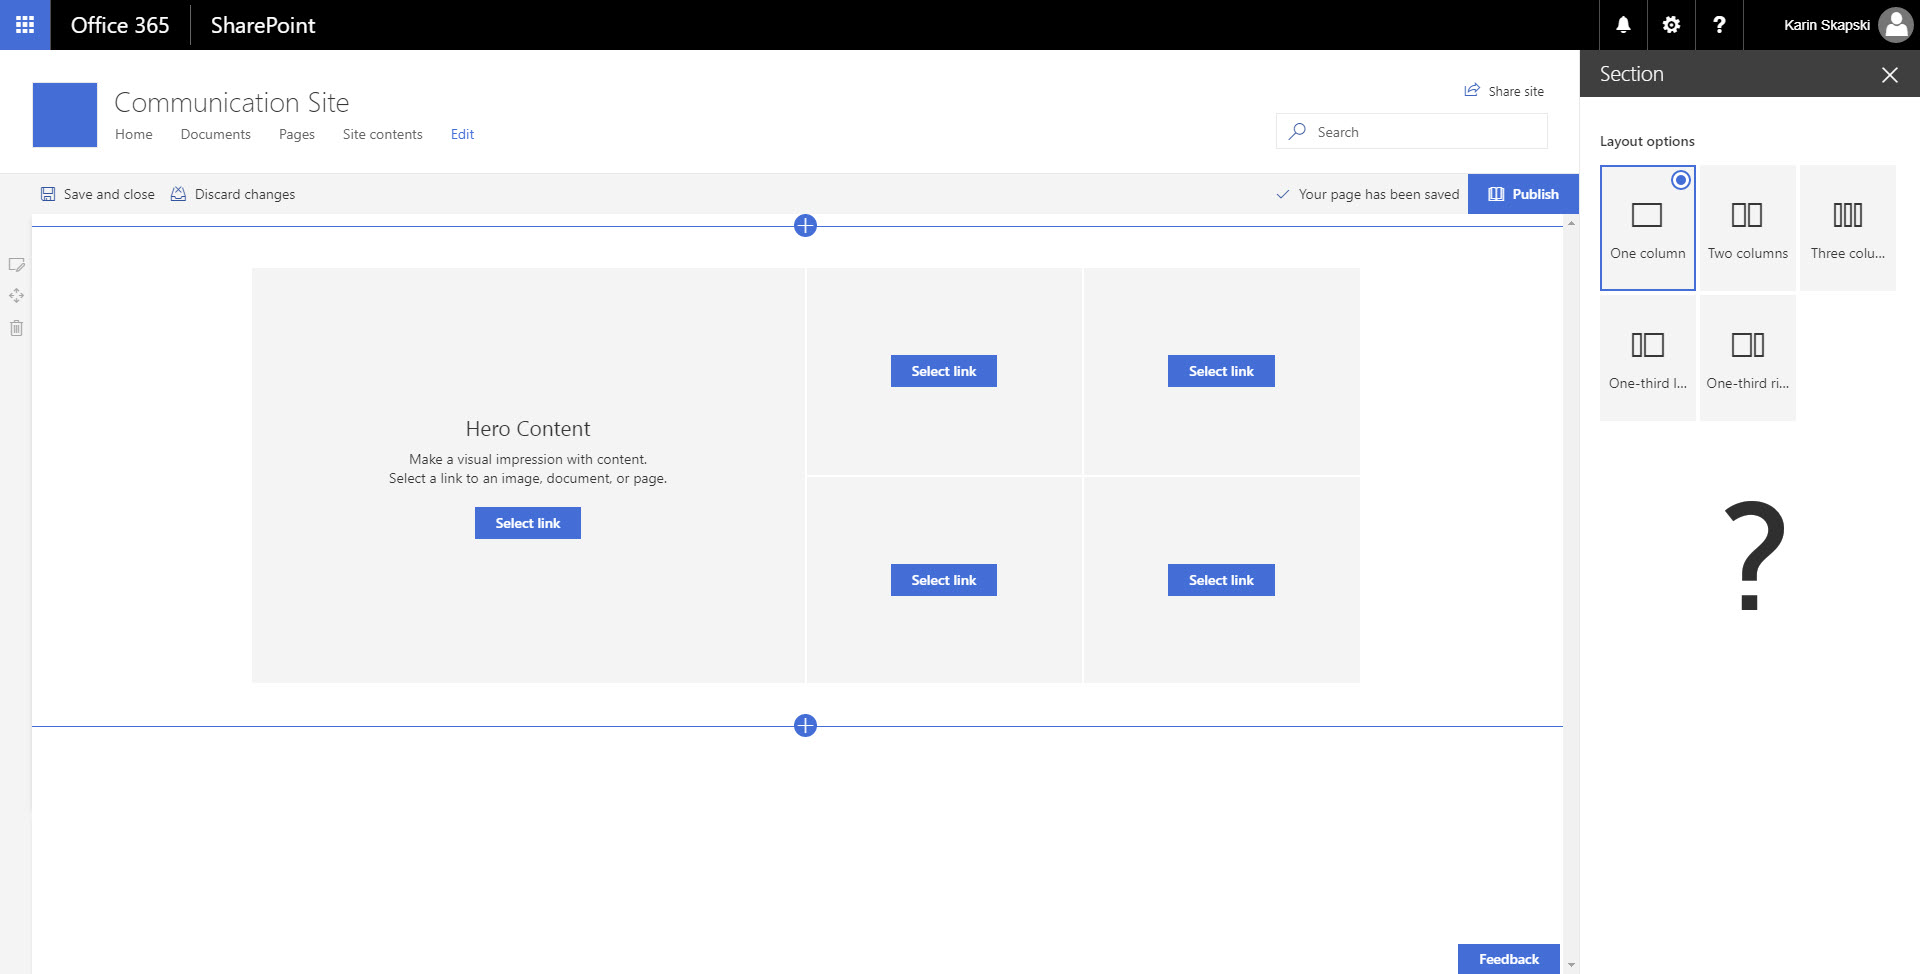 SharePoint Communication Site - Container Layout Options